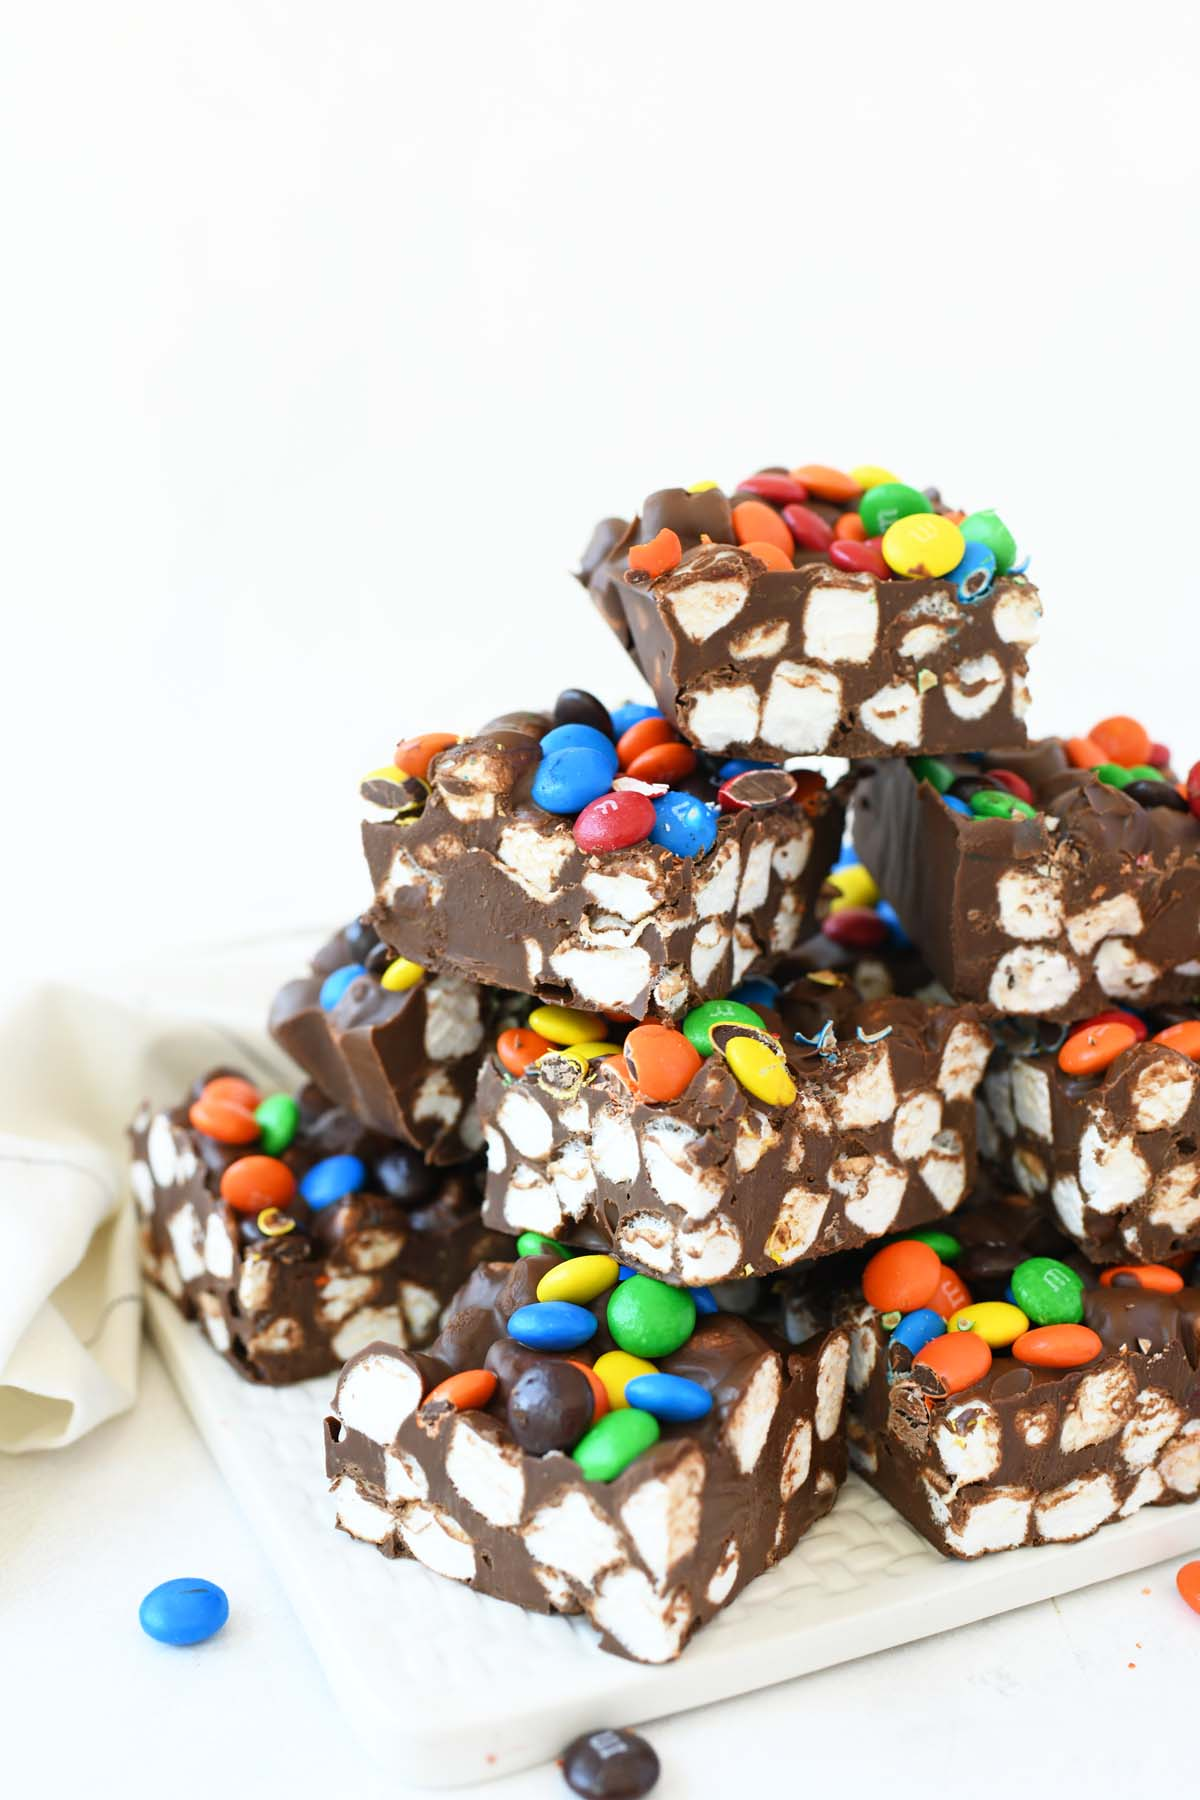 A stack of colorful Marshmallow Dream Bars on a white tray.